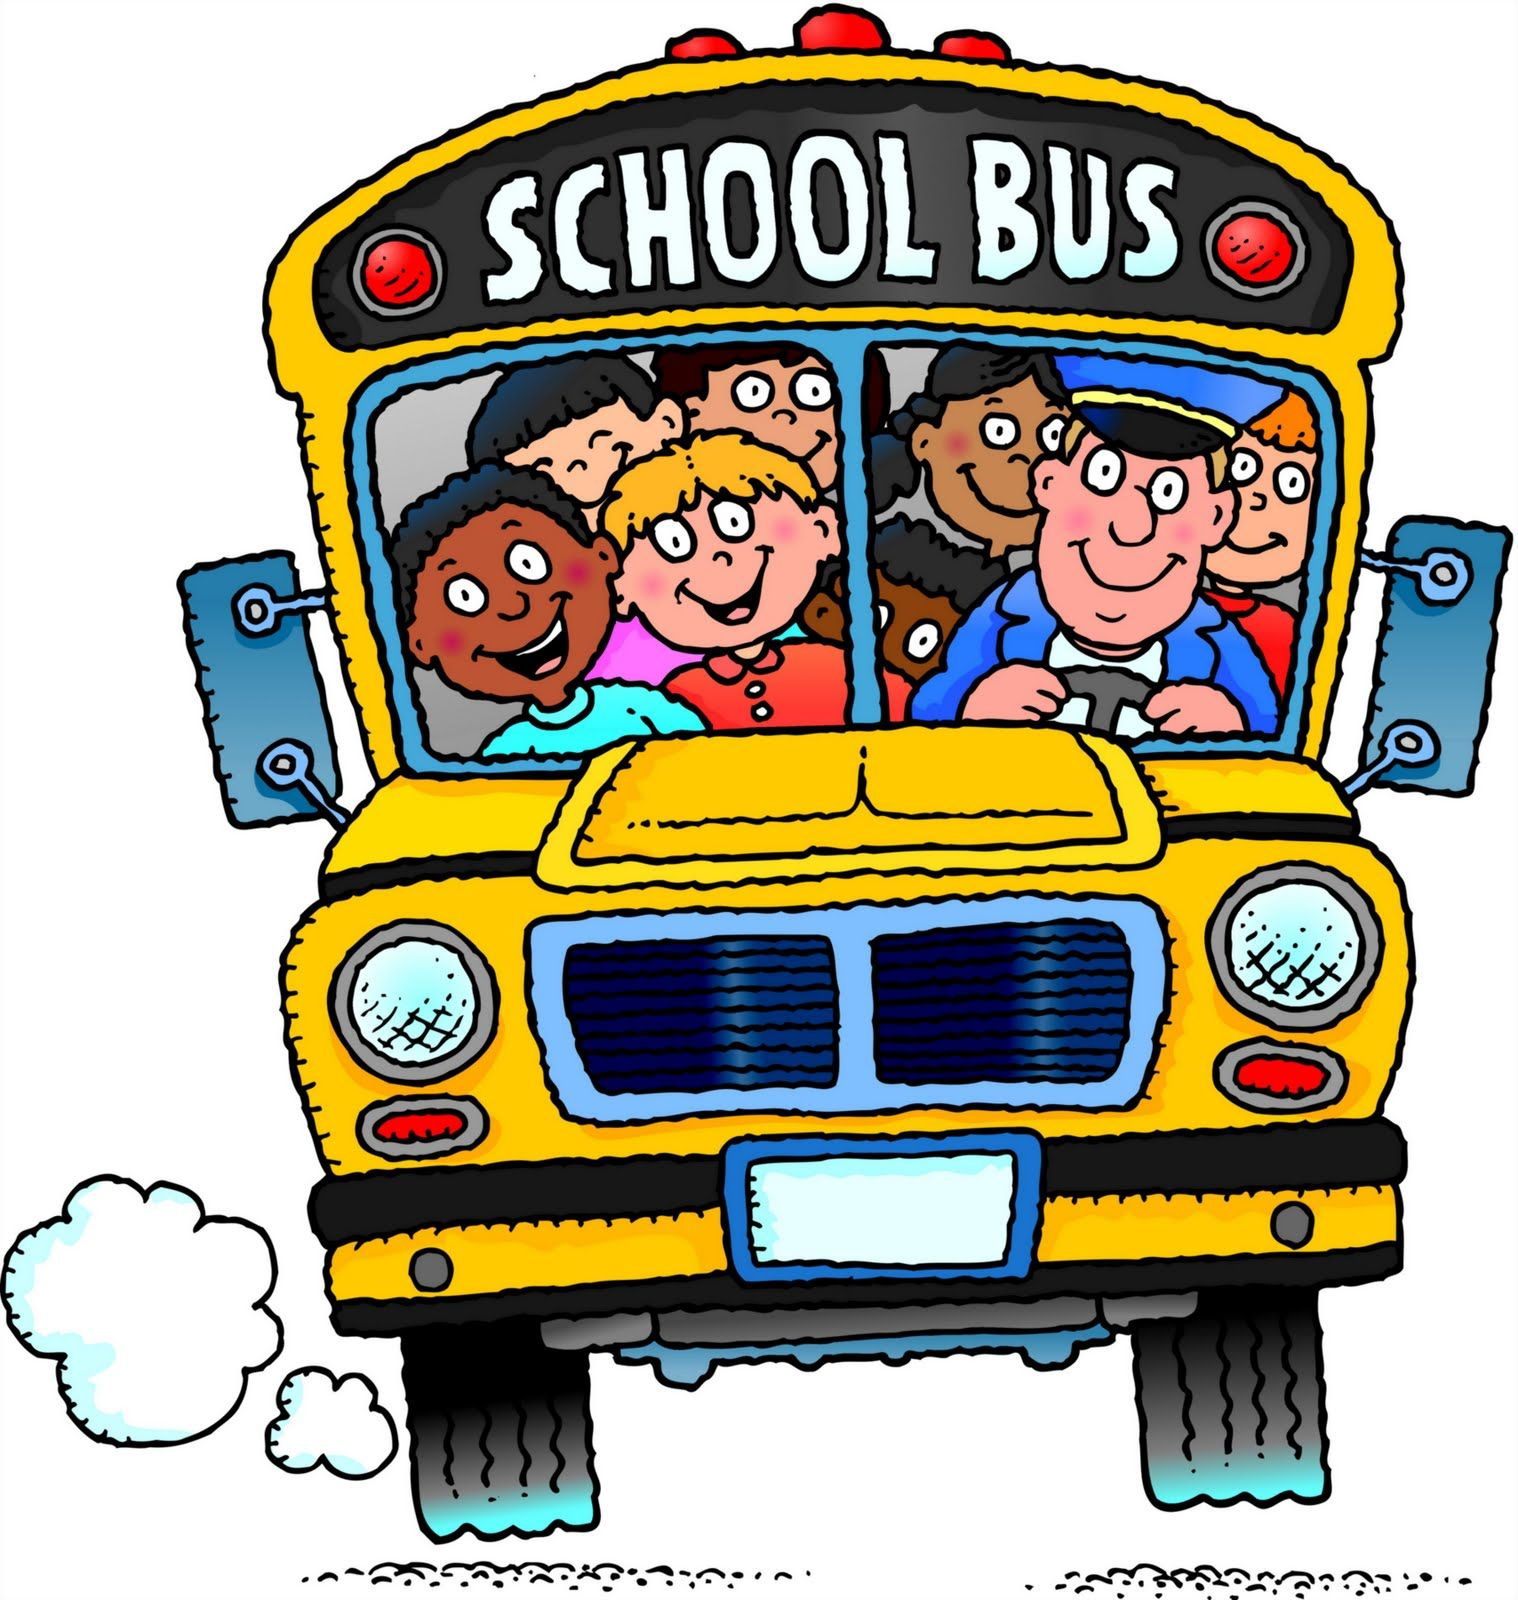 school bus driver clipart google search biscuit eacute cole school bus driver